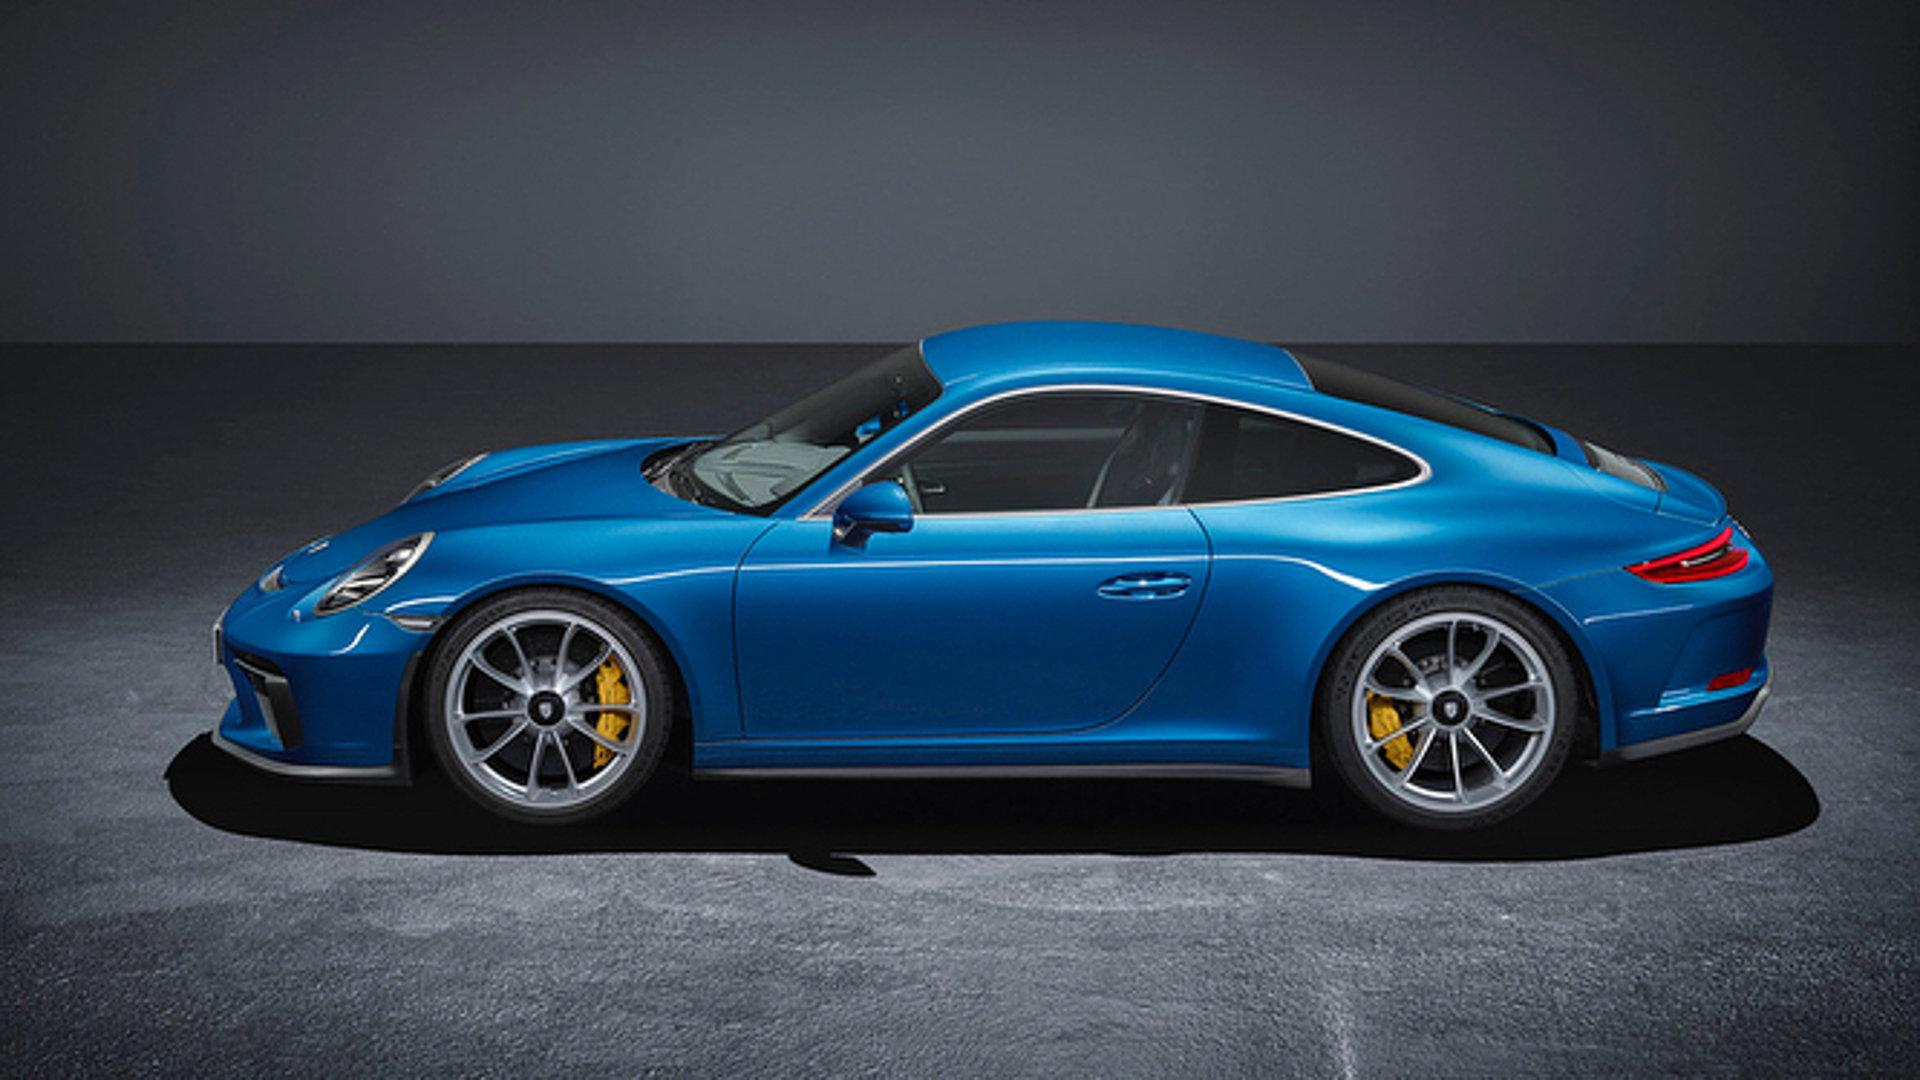 2015 - [Porsche] 911 Restylée [991] - Page 11 Porsche-911-gt3-touring-package-leaked-official-image